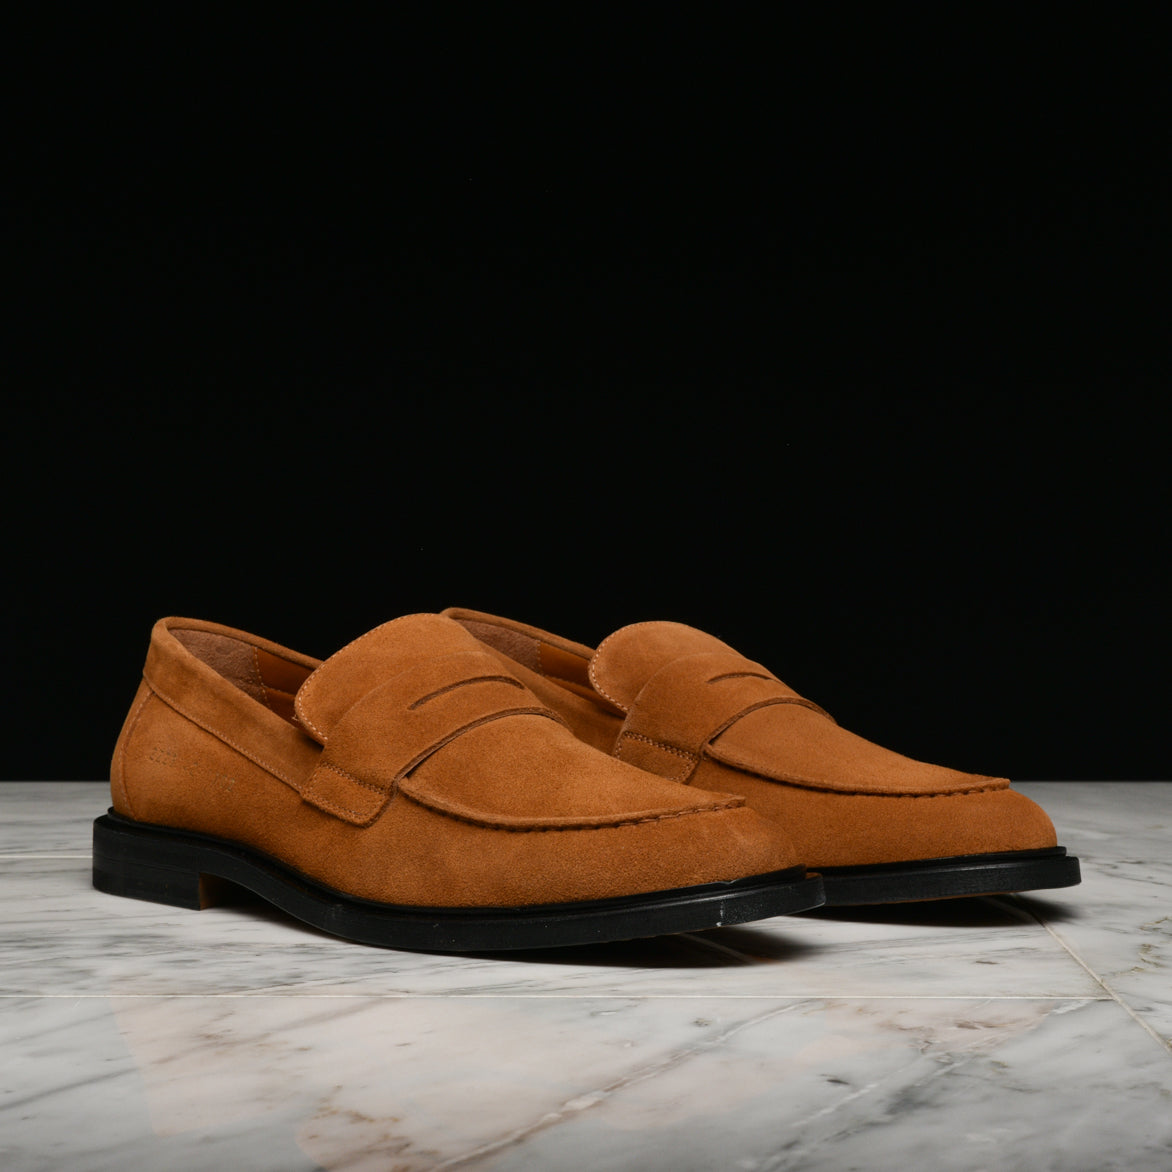 SUEDE LOAFER - TAN